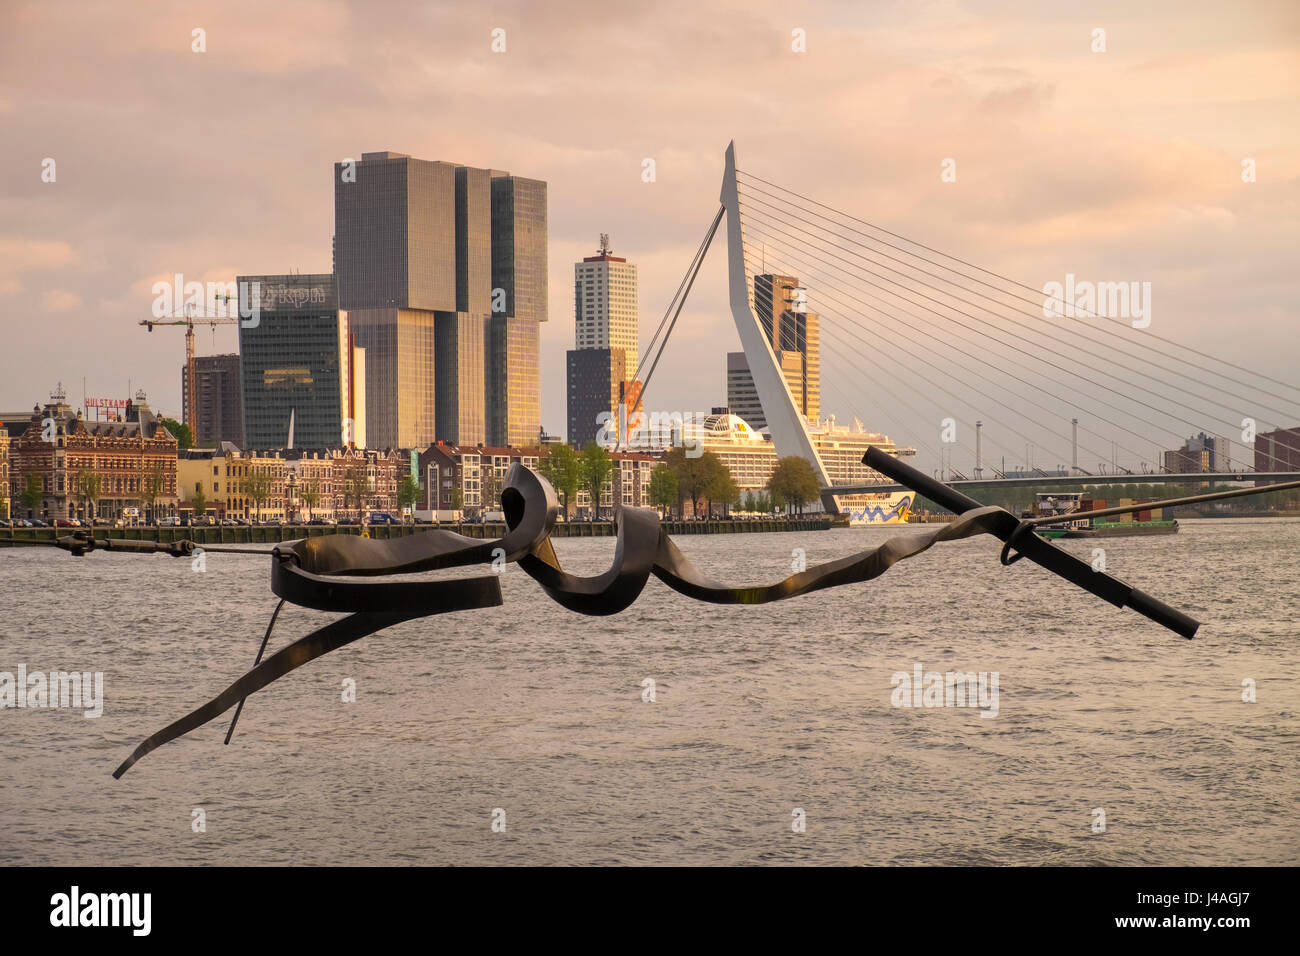 Examples of modern architecture including Erasmus Bridge and De Rotterdam seen alongside the Maas river, Rotterdam, Stock Photo